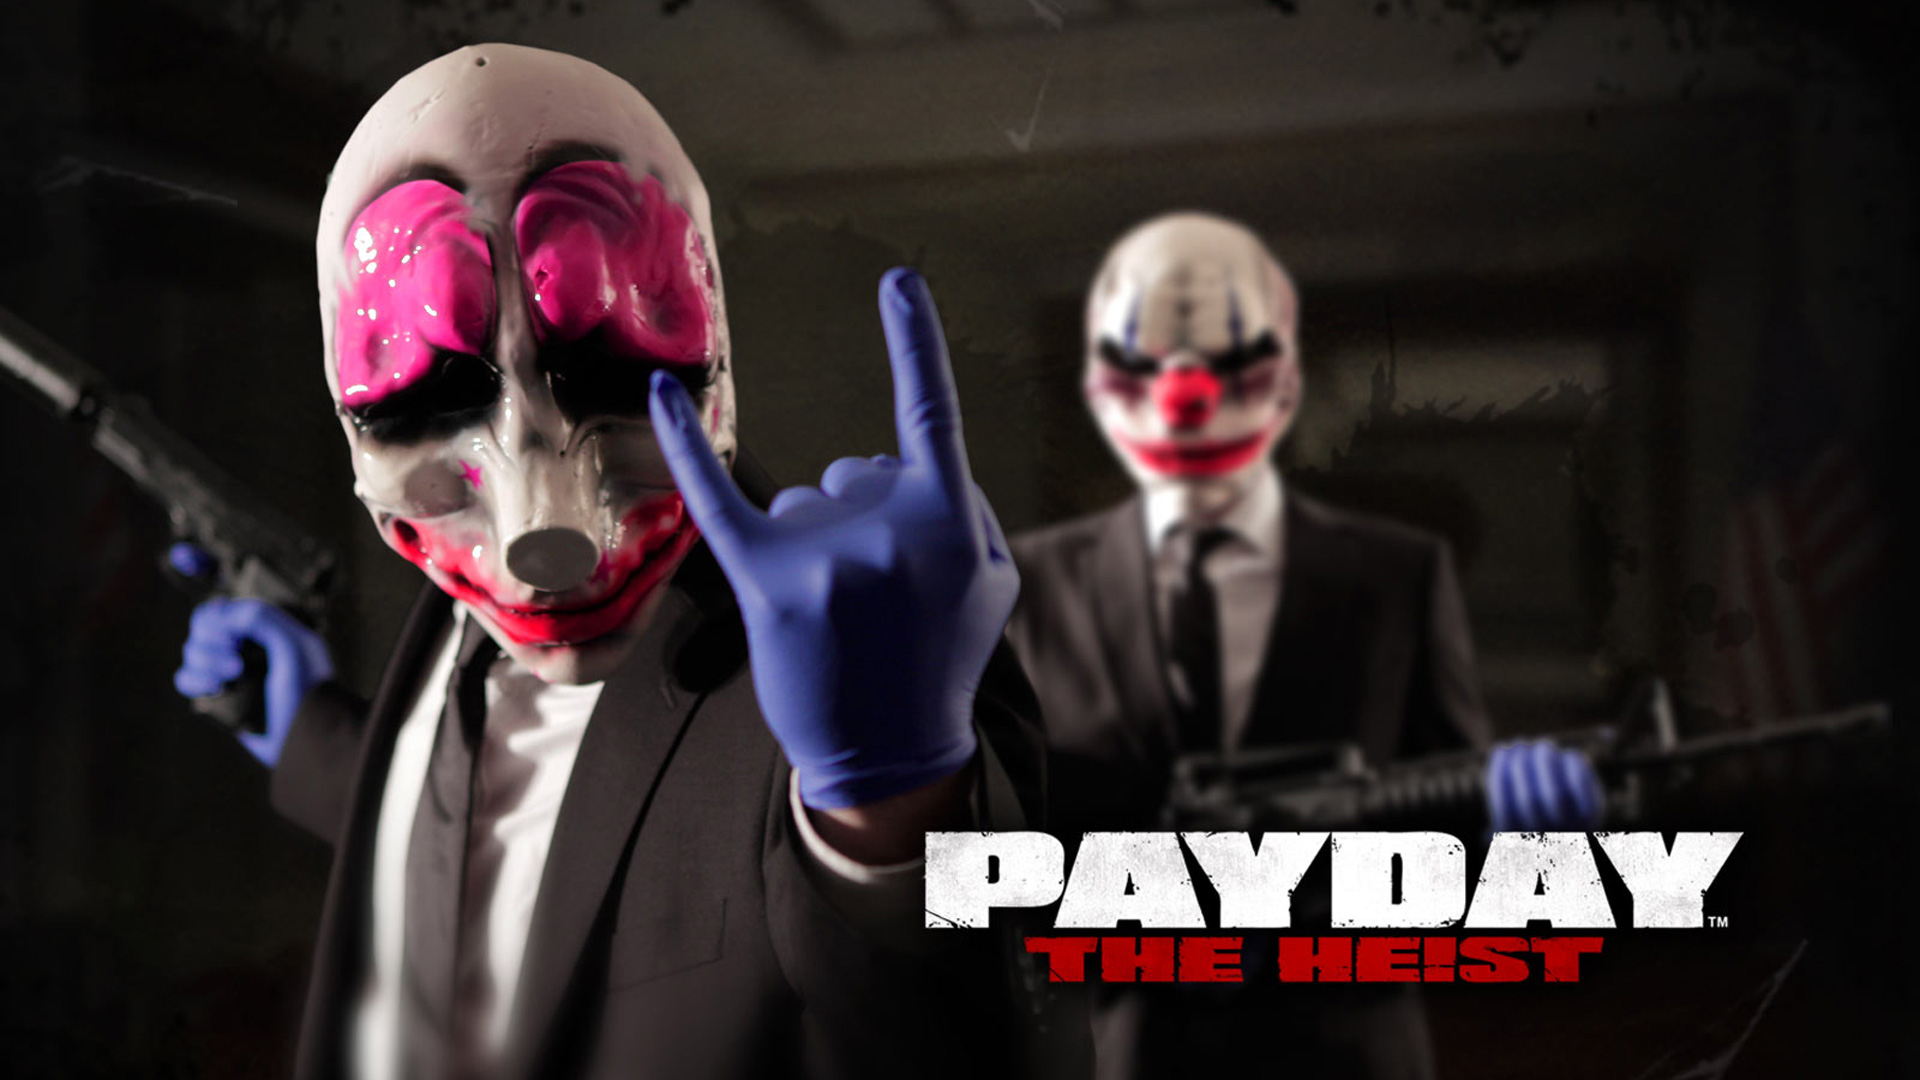 Payday: The Heist High Quality Background on Wallpapers Vista